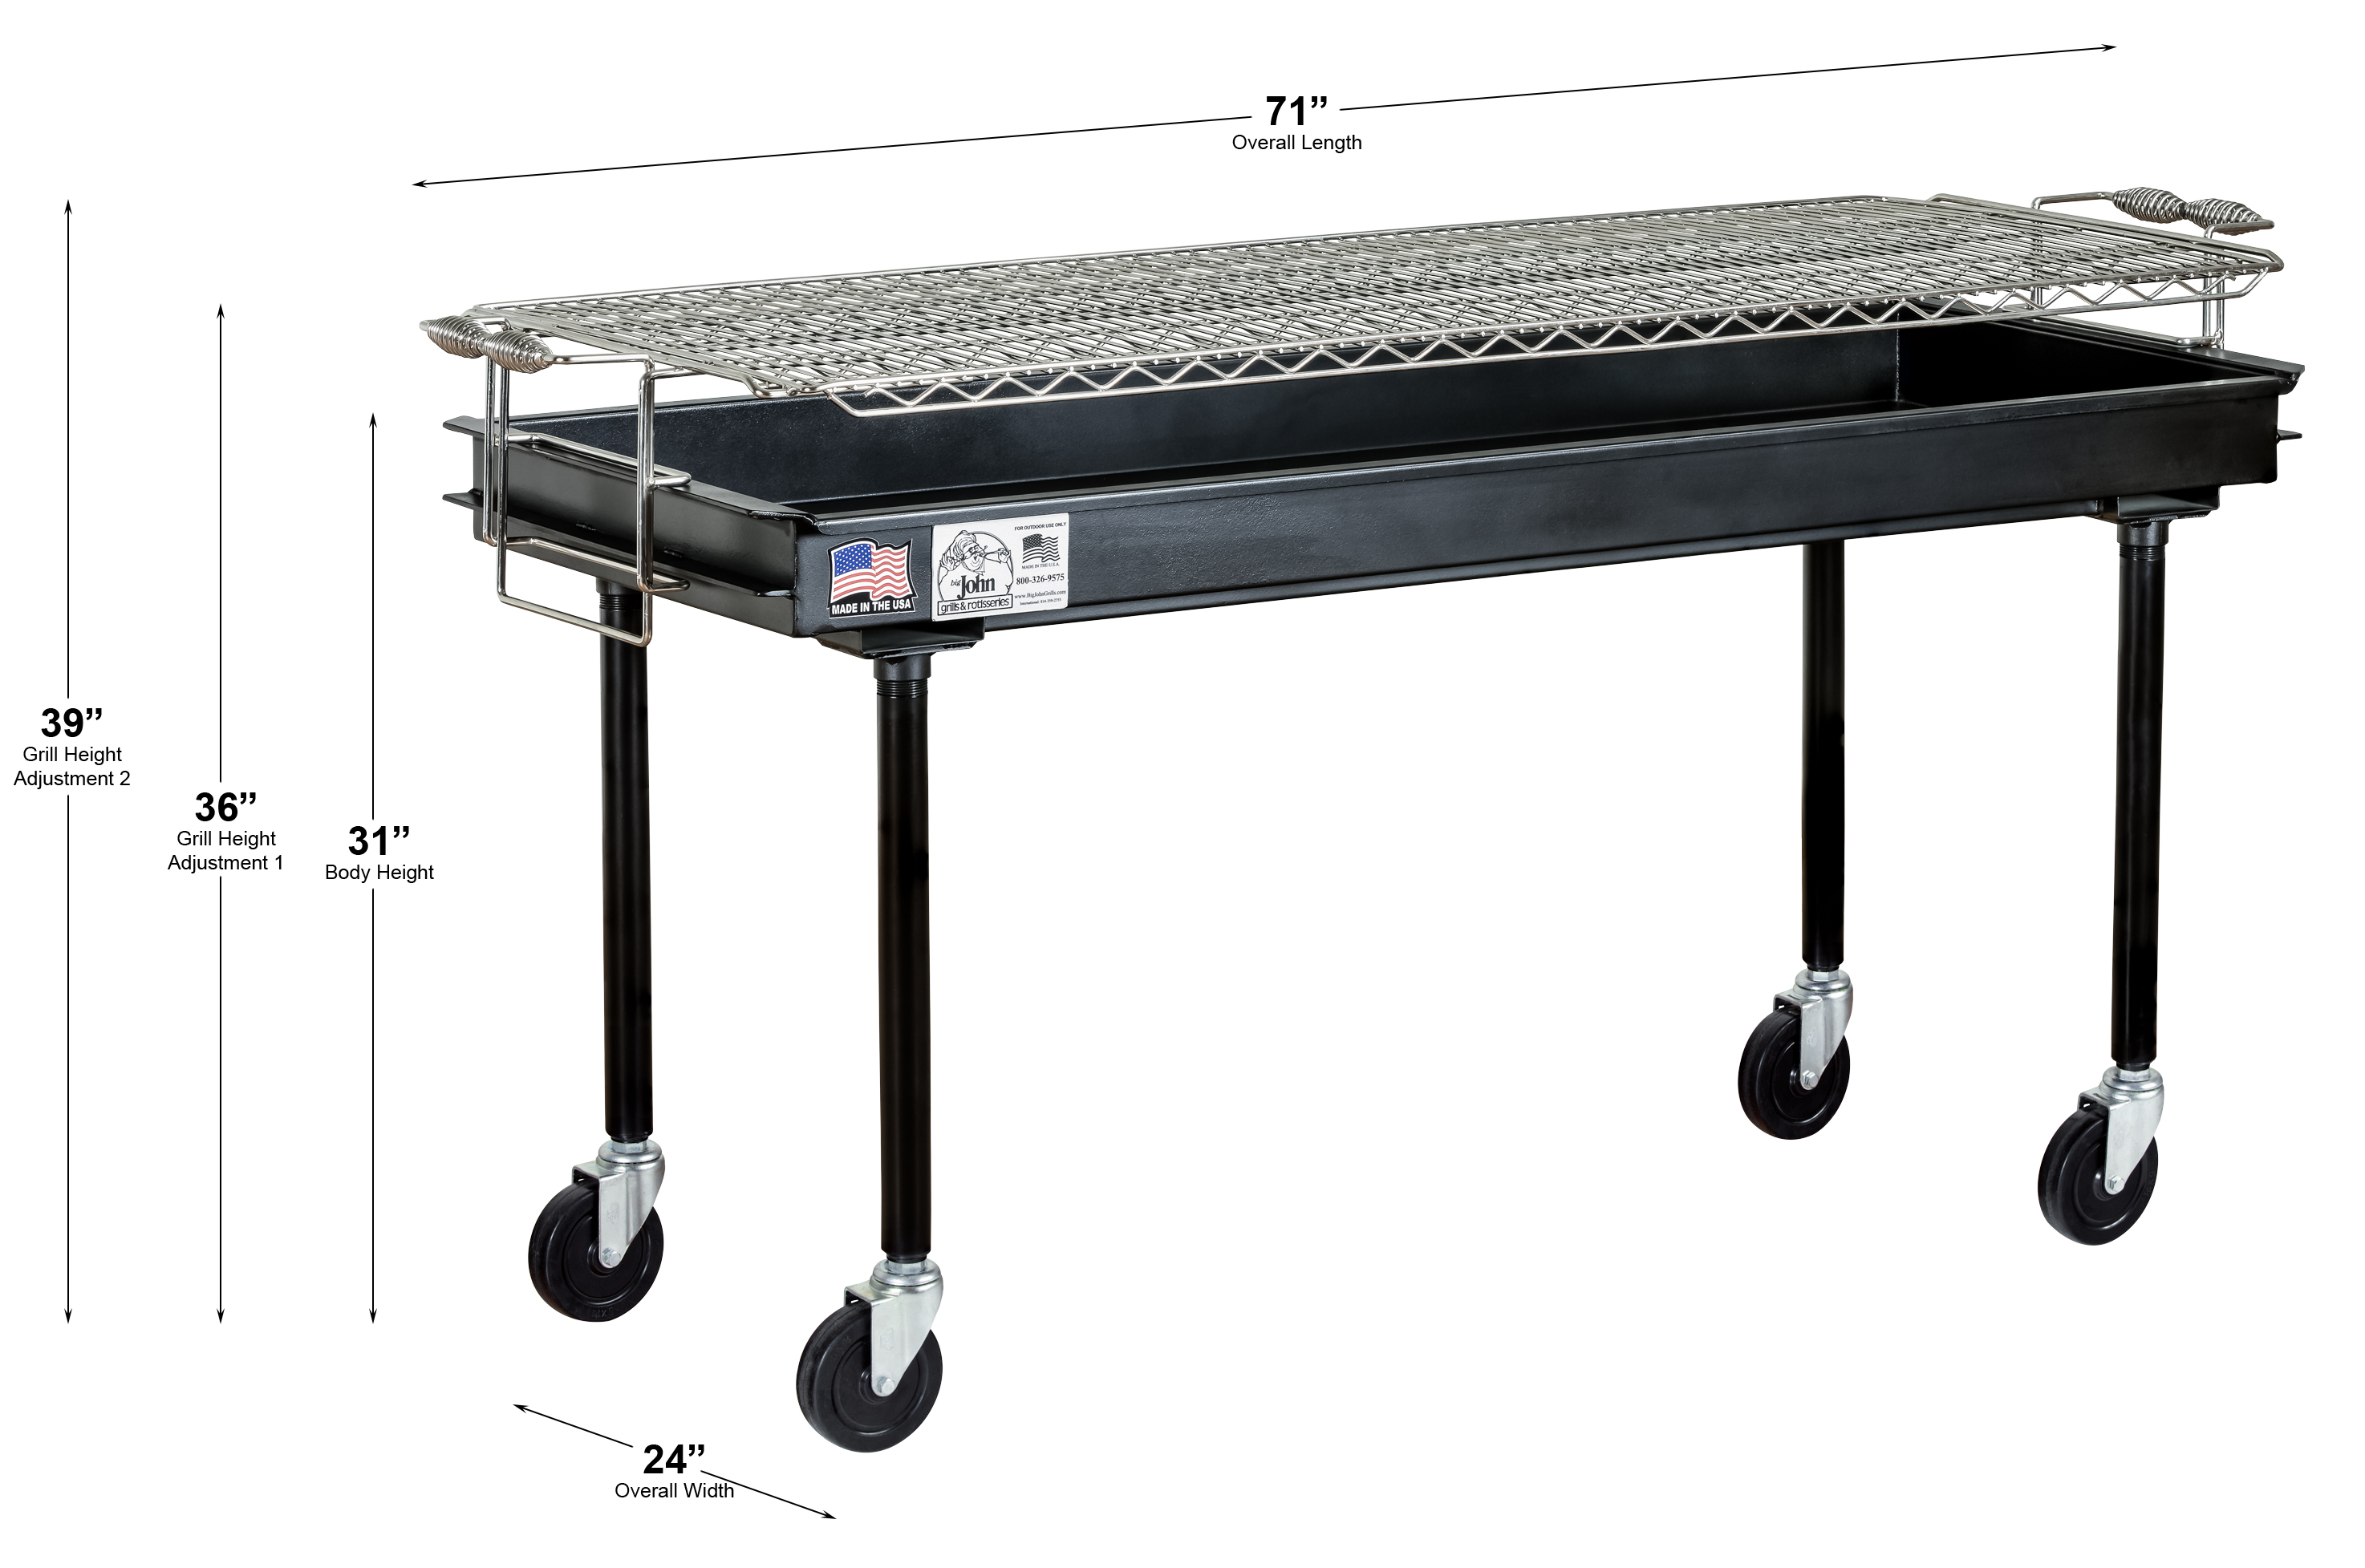 Cooking Surface 61 5 L X 24 W 1 H 10 Sq Feet Please Note All Measurements Are Rough John Grills Recommends Having Equipment In Hand For